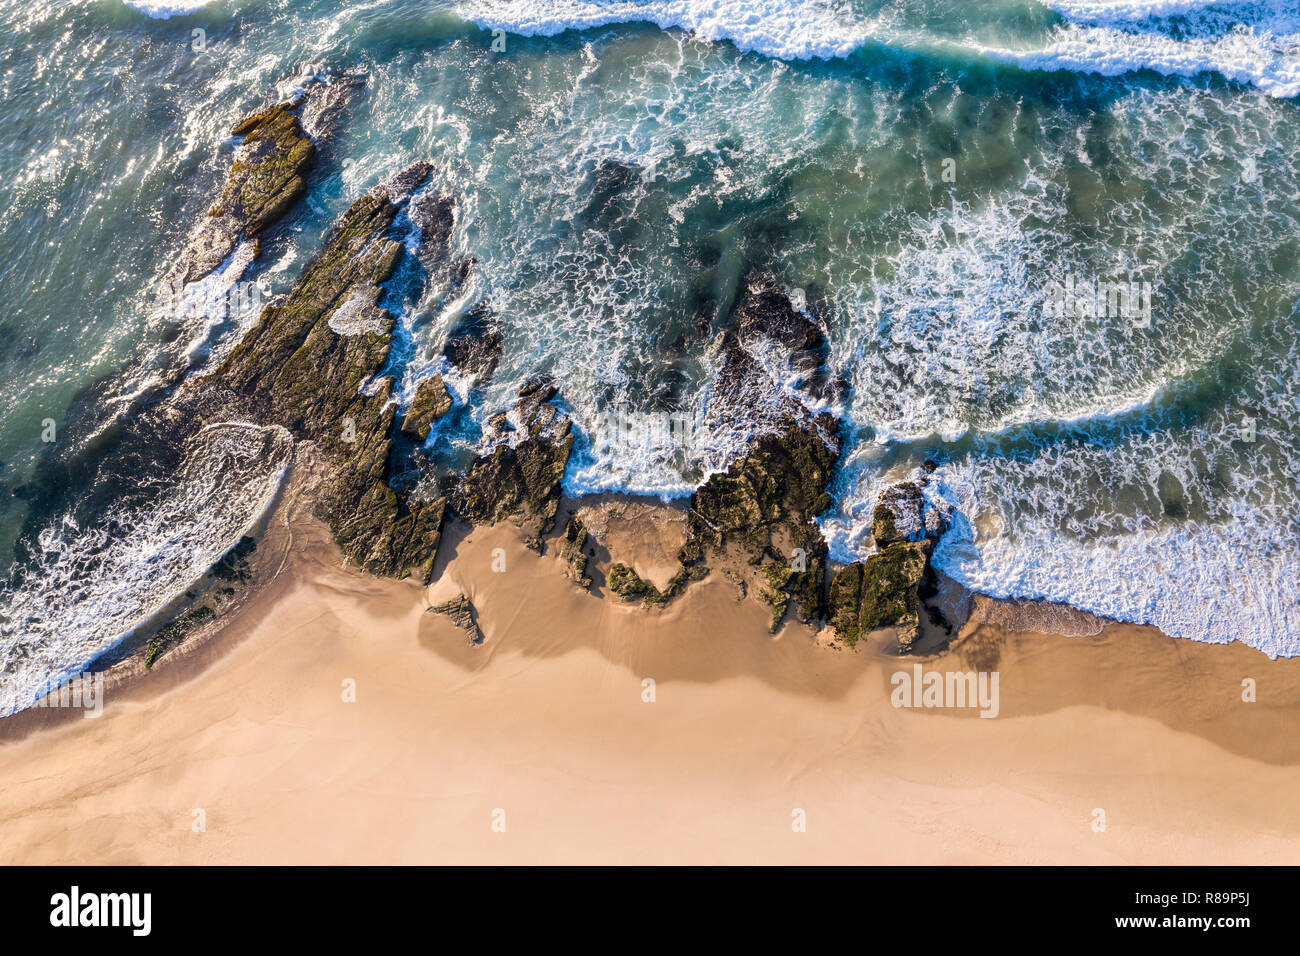 Aerial view of waves running across the rocks at Dudley Beach - Newcastle Australia - Stock Image